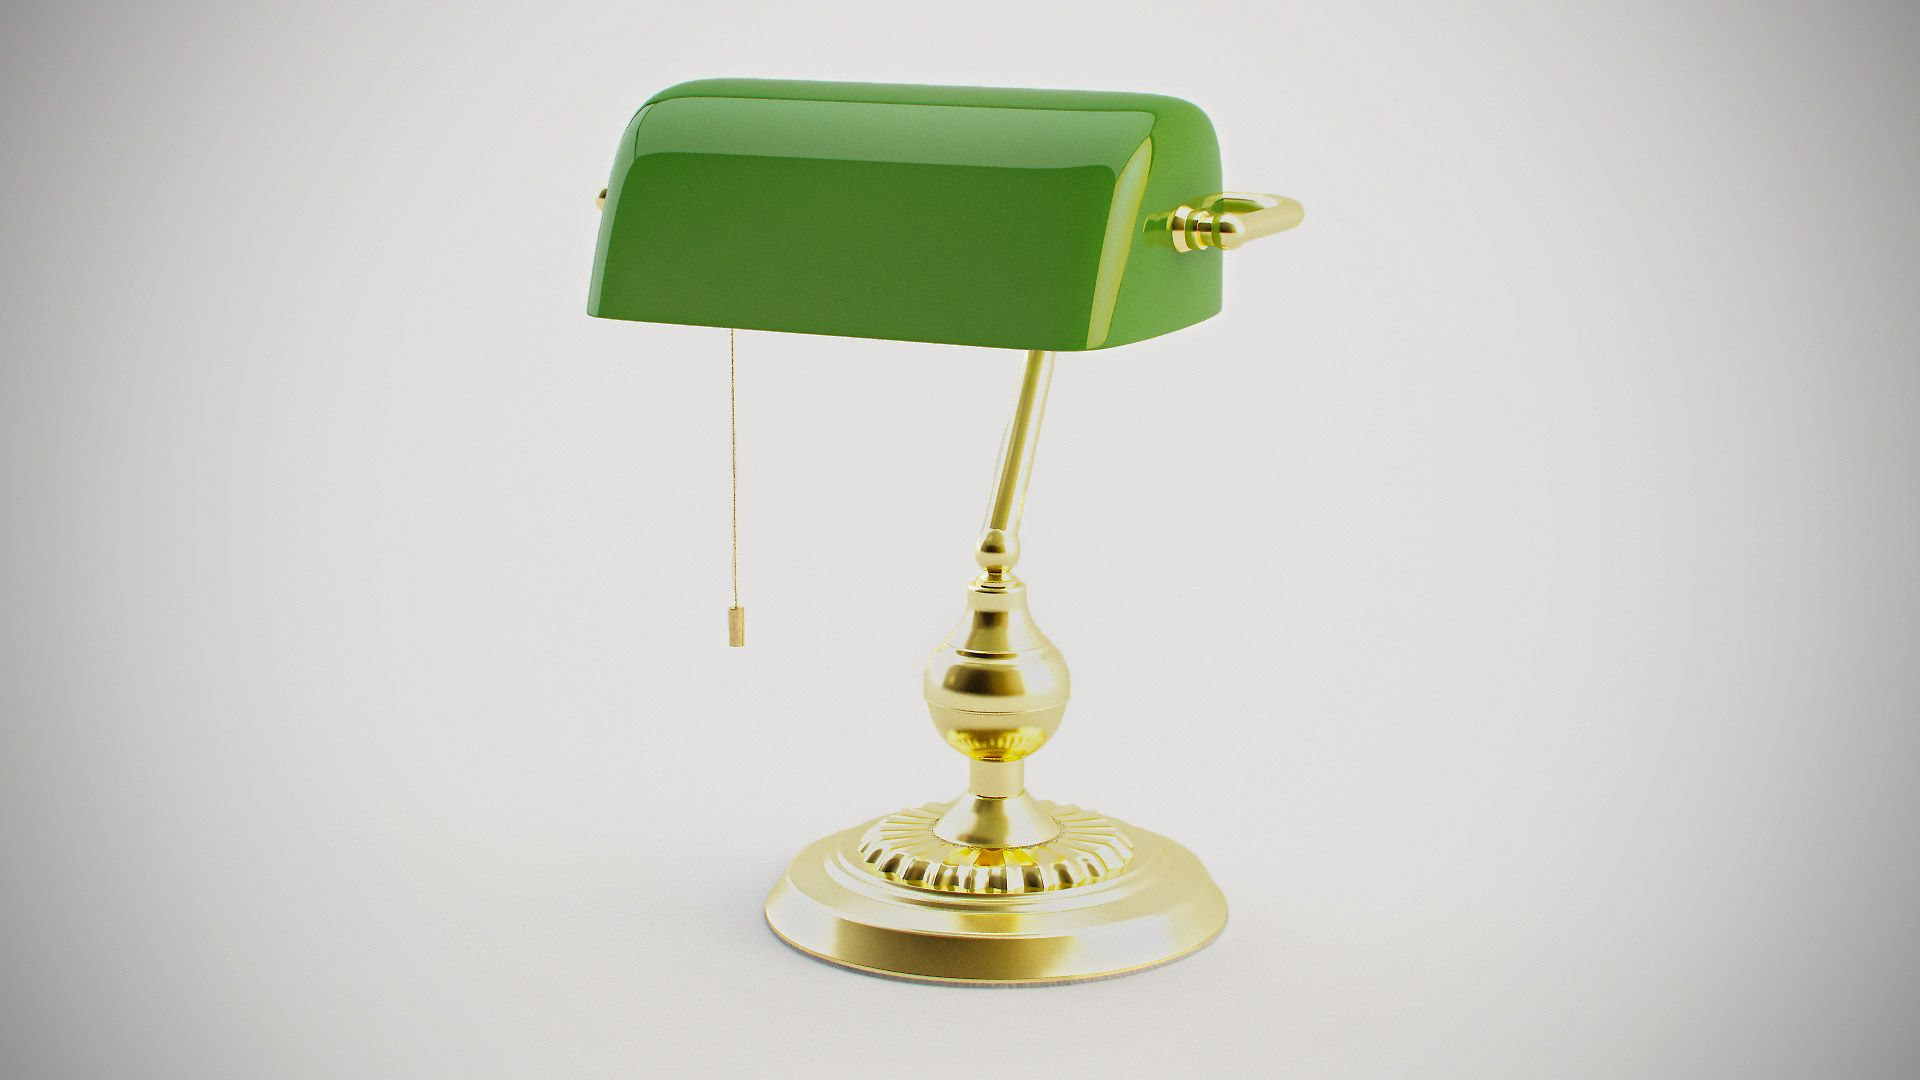 lamp lamps banker desk traditional canada com bankers green